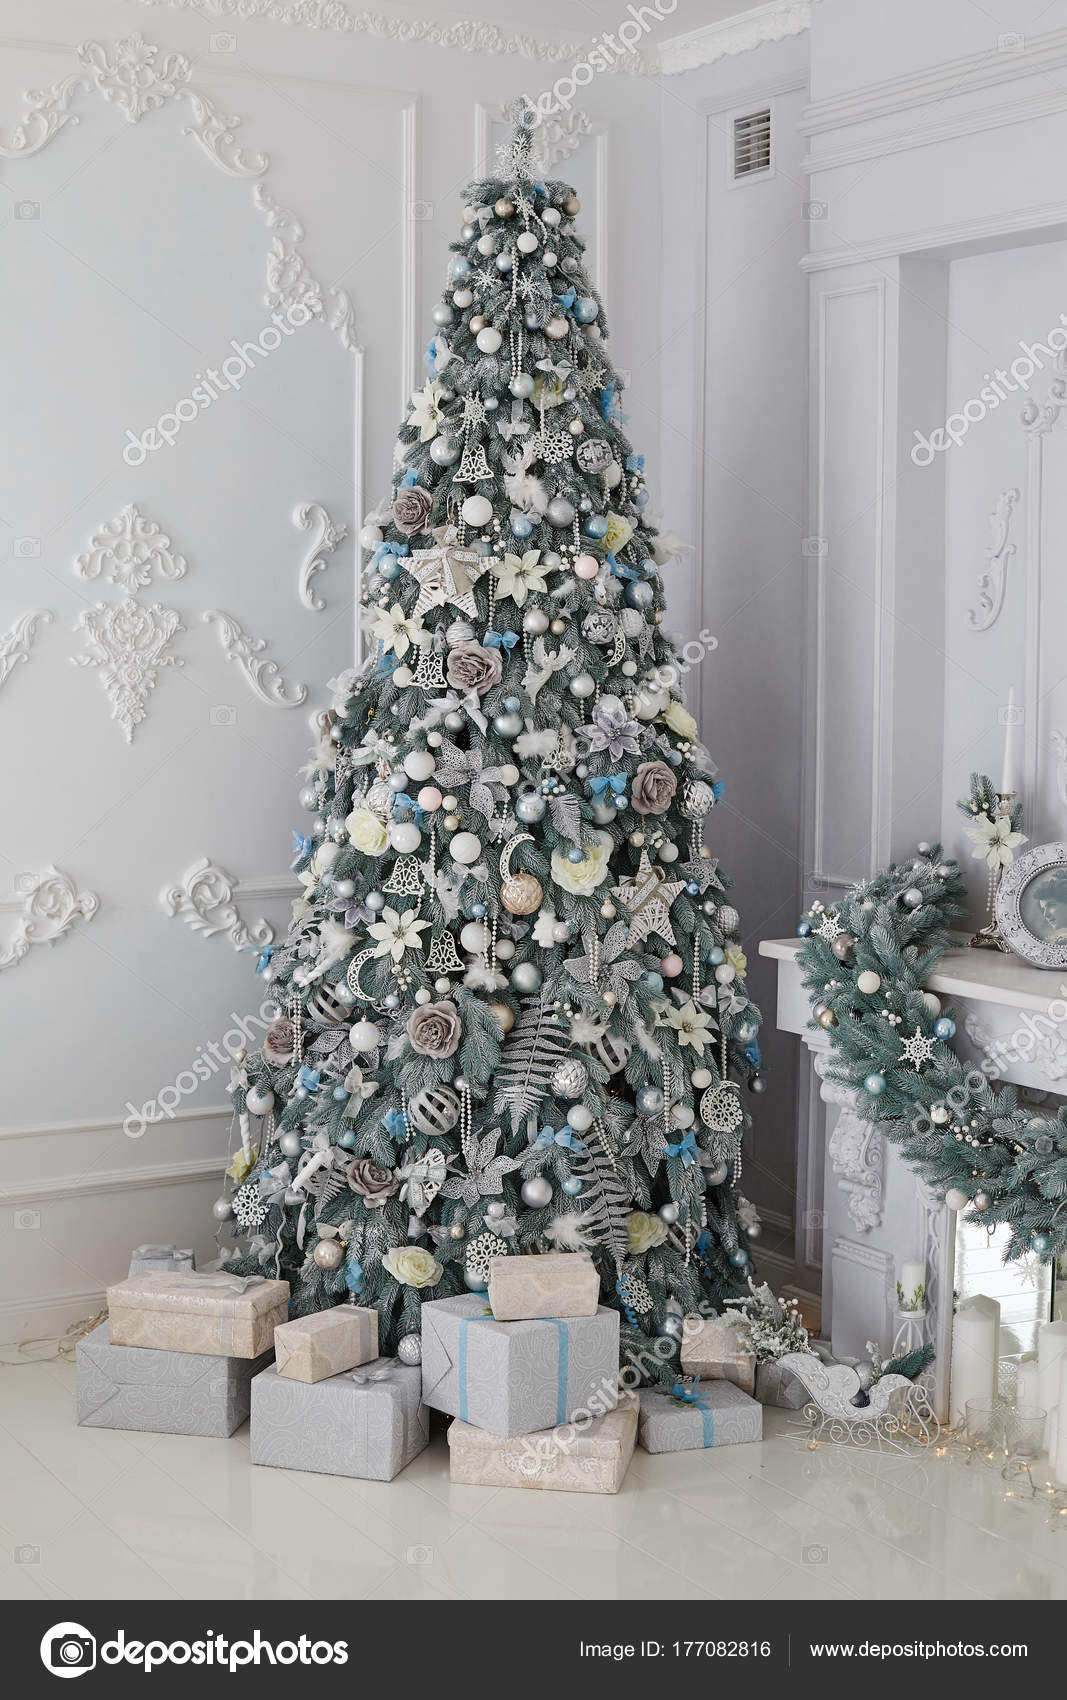 Beautiful Holiday Decorated Room Christmas Tree Presents White Silver Christmas Stock Photo Image By C Ovcharenkoviktoria 177082816